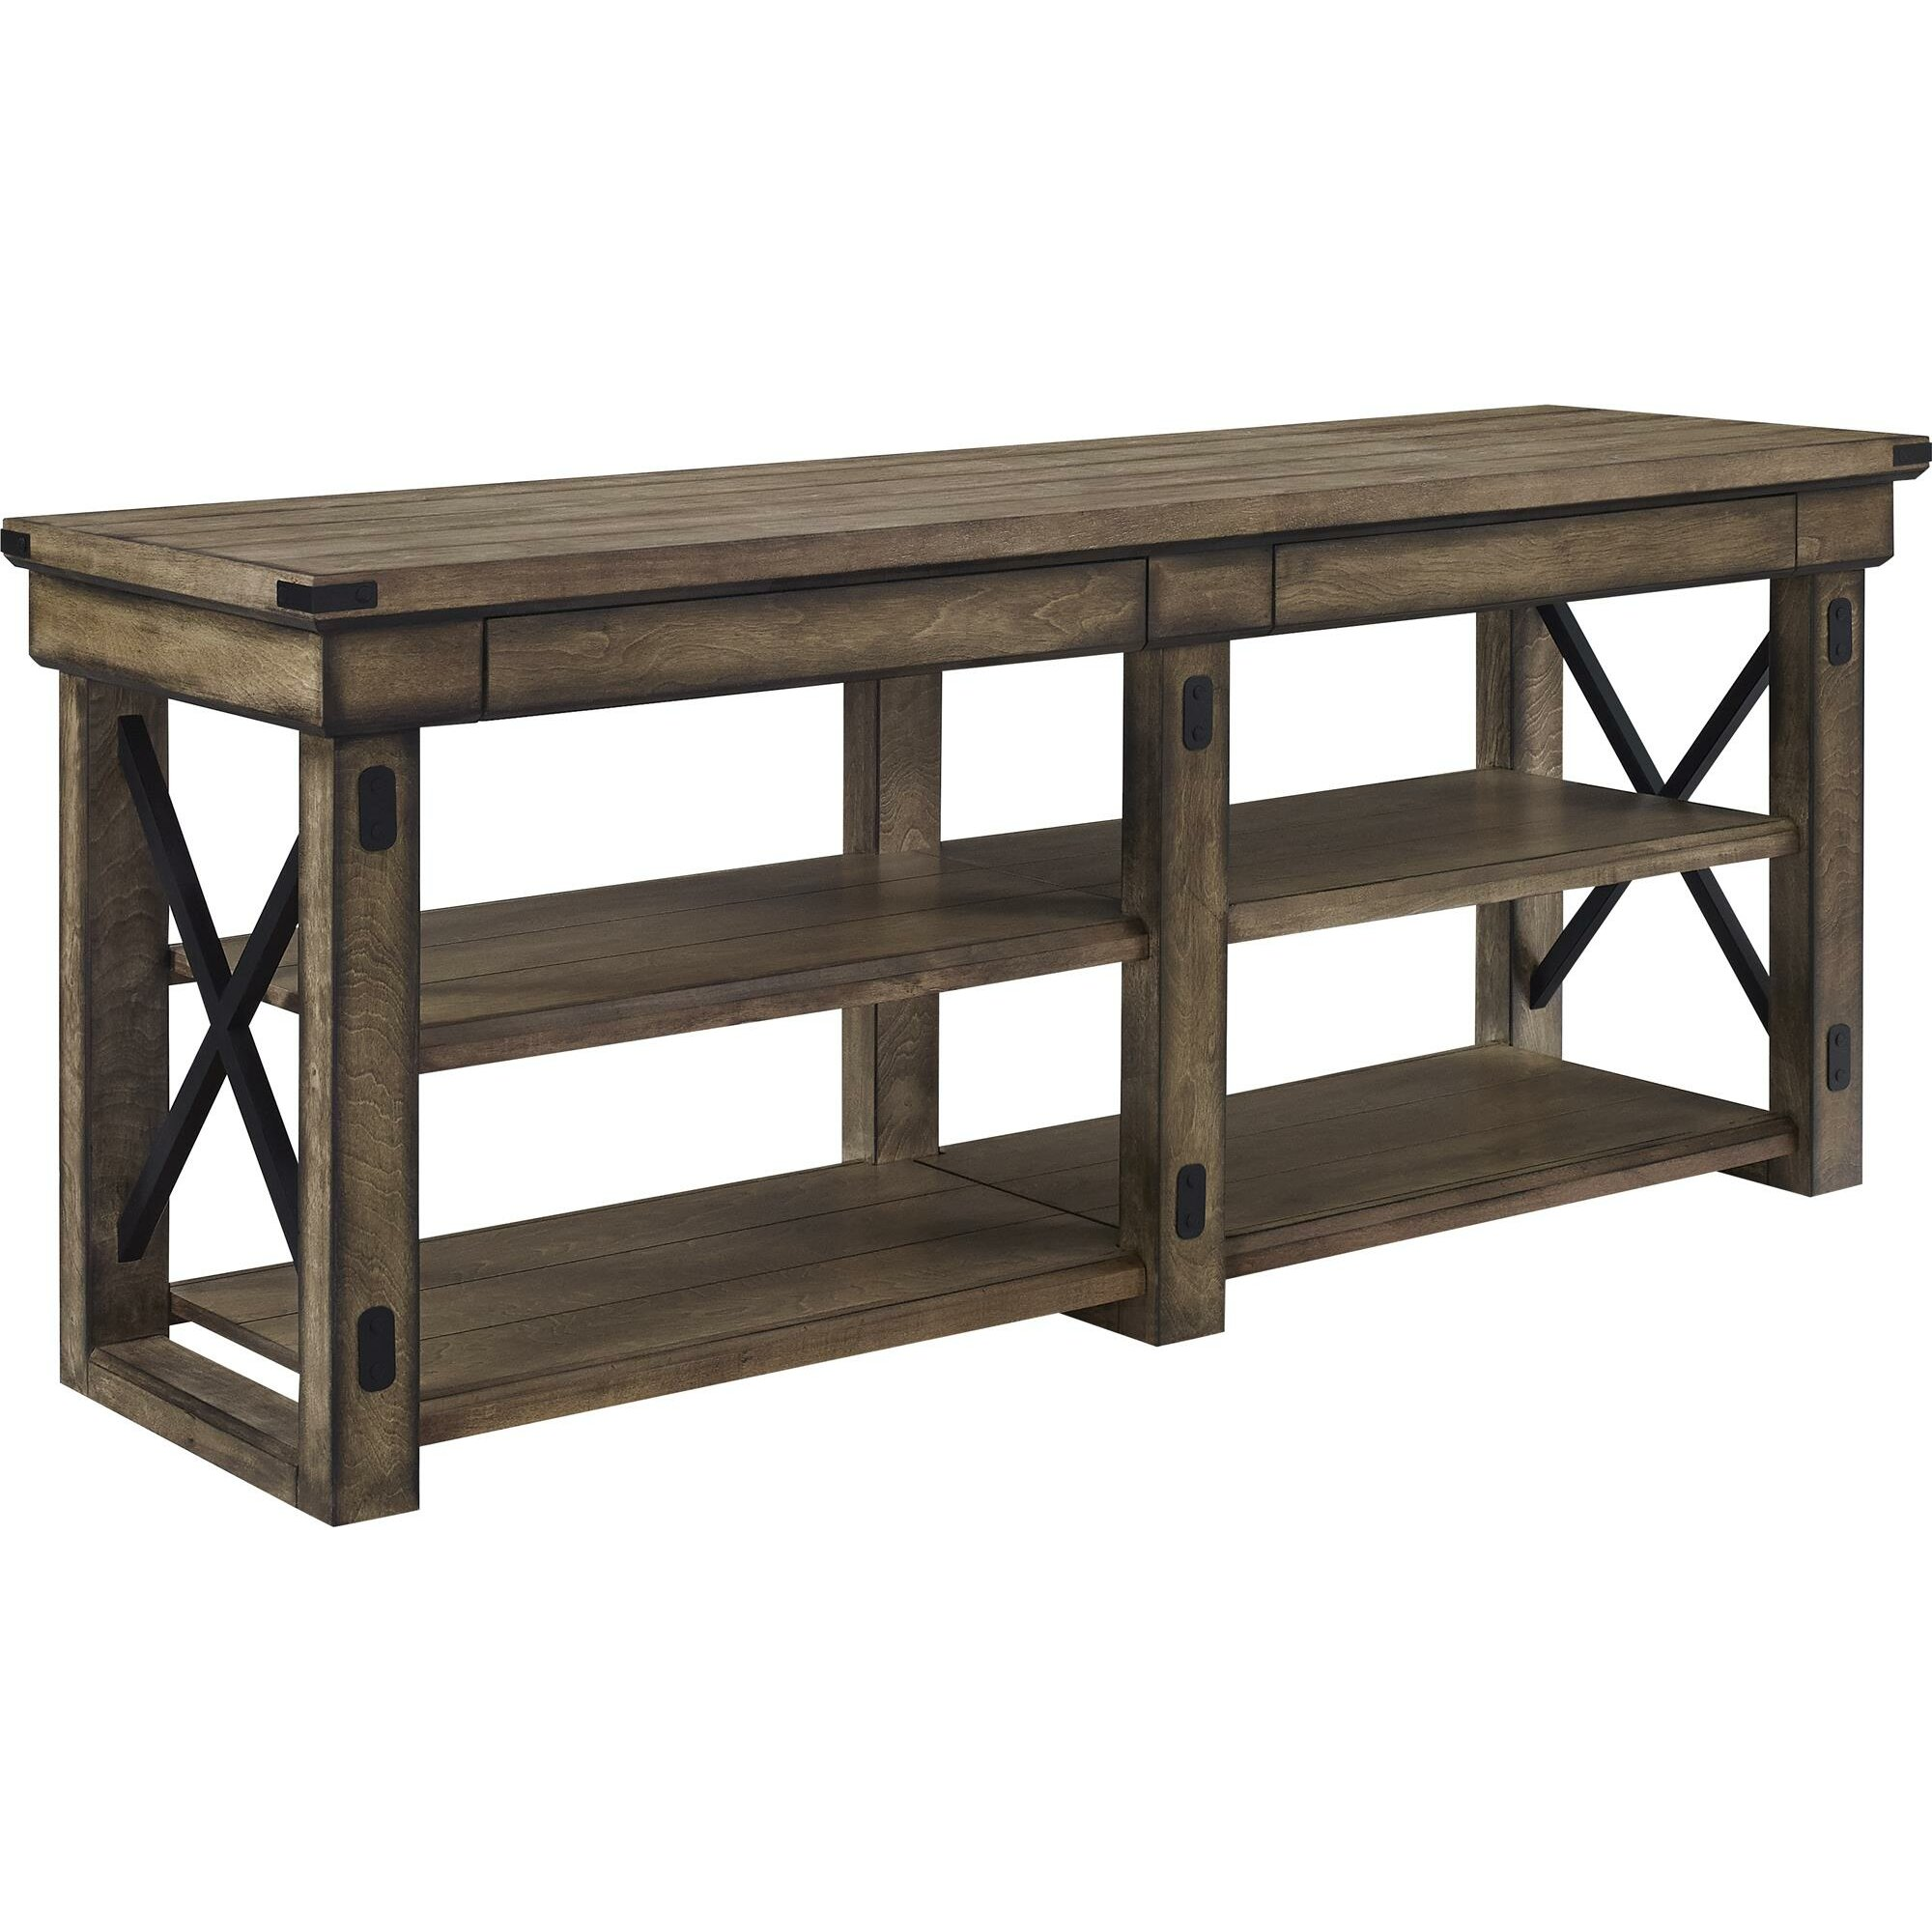 August grove irwin rustic wood tv stand reviews wayfair Rustic tv stands